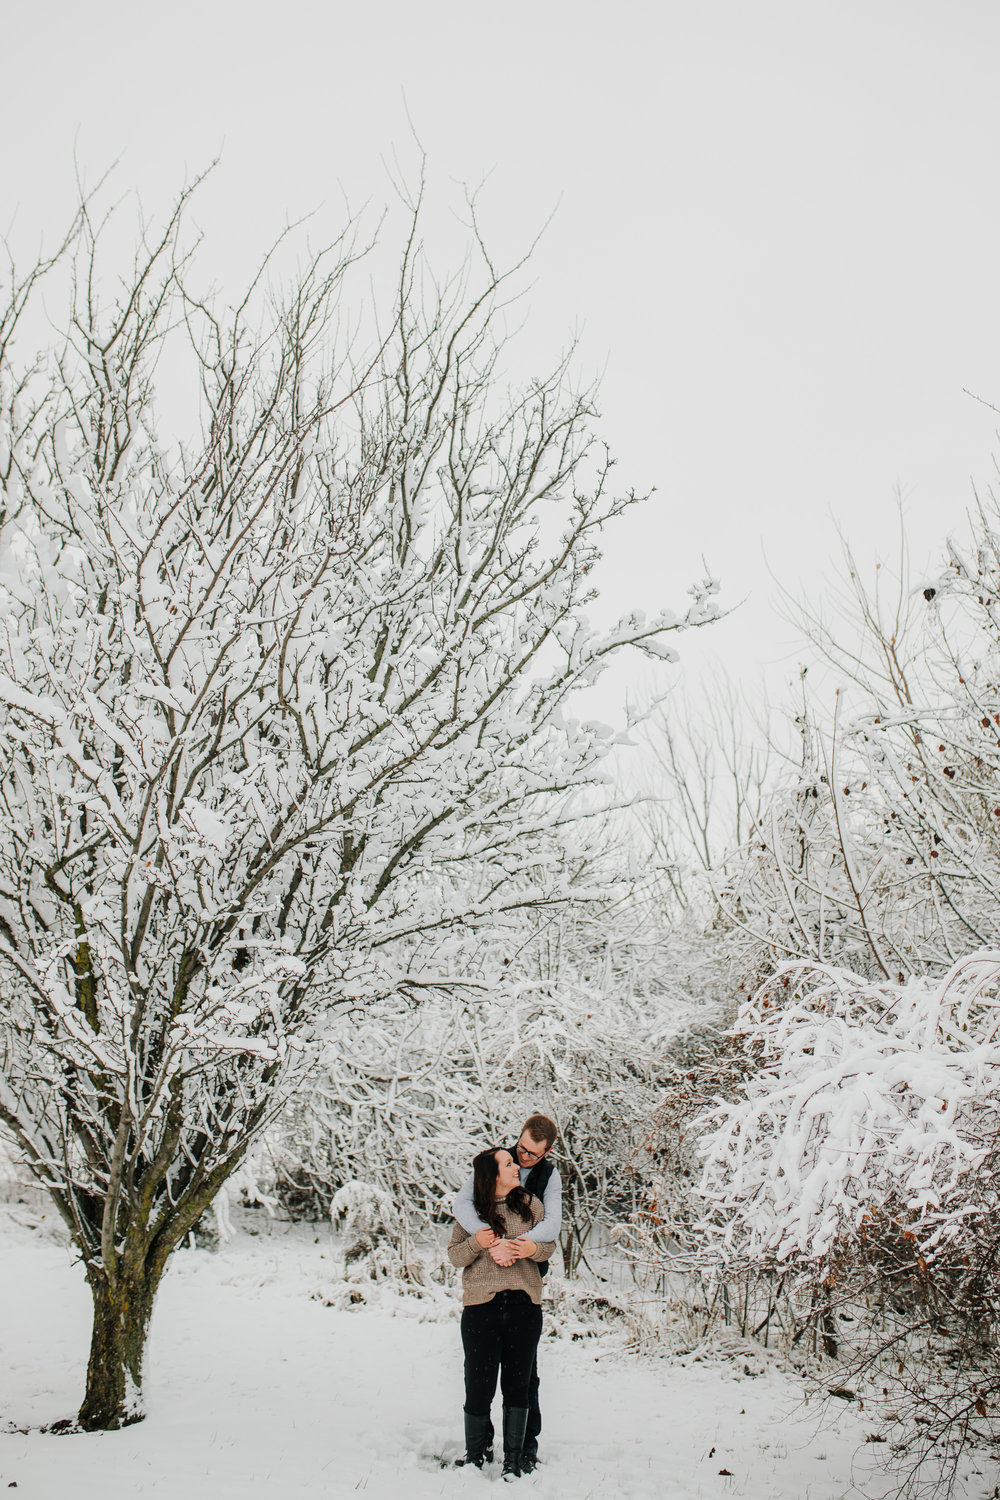 Vanessa & Dan - Engaged - Nathaniel Jensen Photography - Omaha Nebraska Wedding Photographer - Standing Bear Lake - Snowy Engagement Session-22.jpg